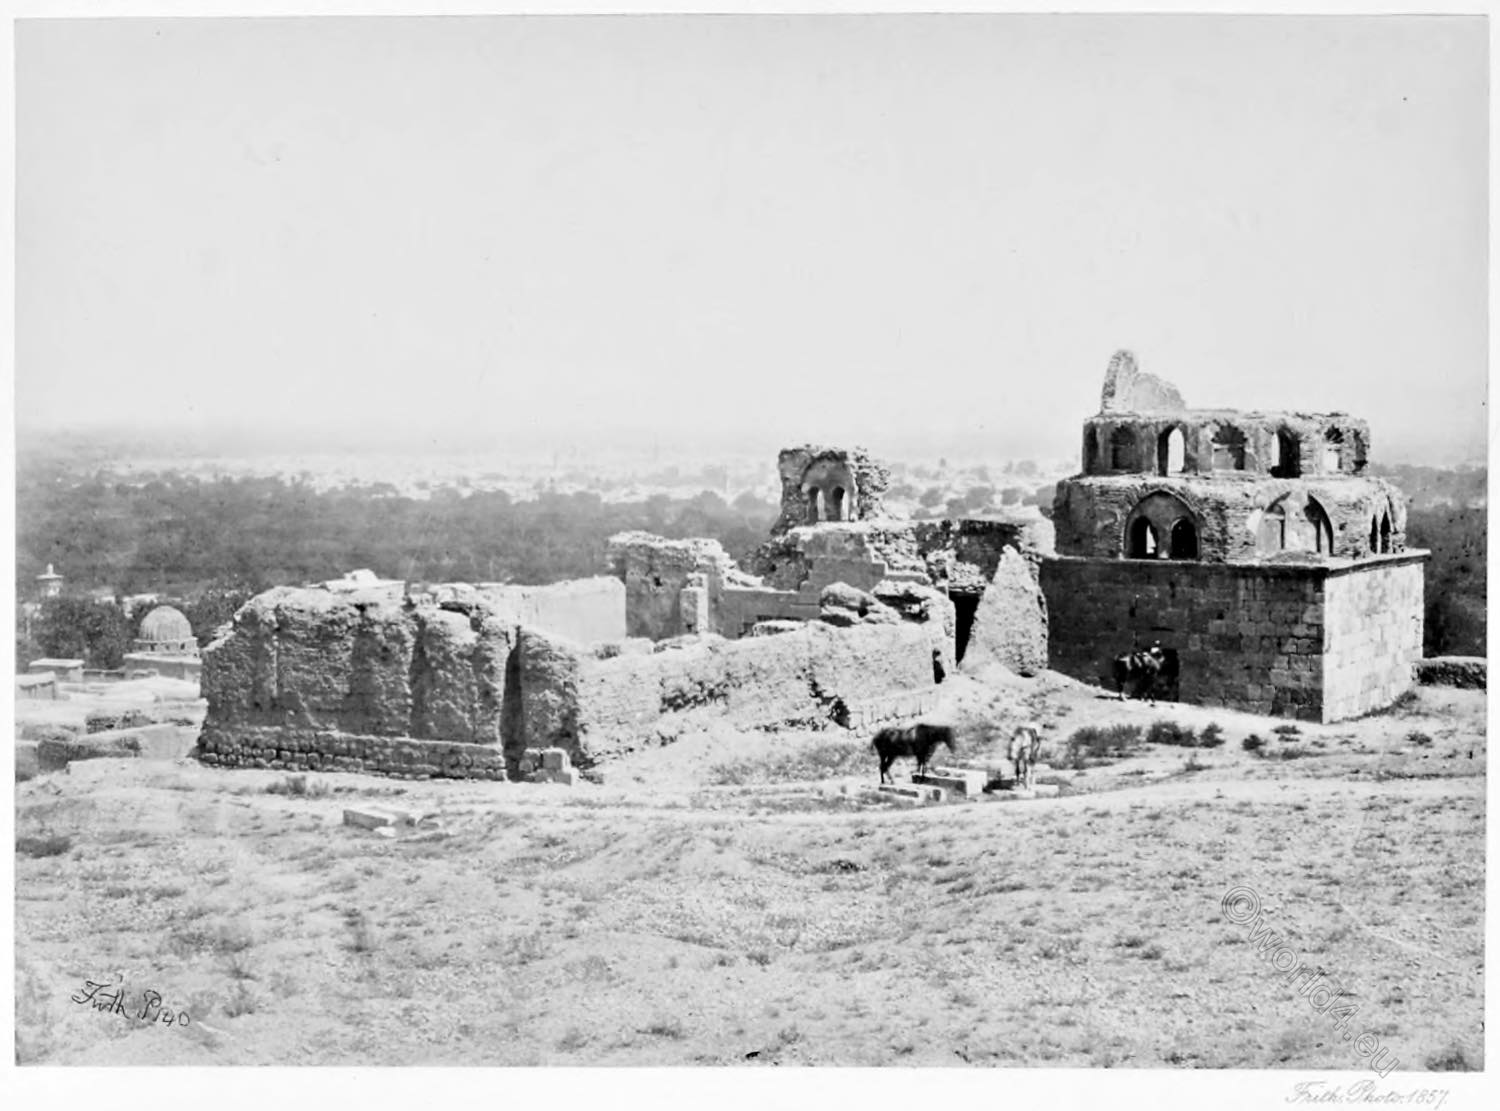 Damascus, Syria, Francis Frith, Holy, Land, Historical photograph, view